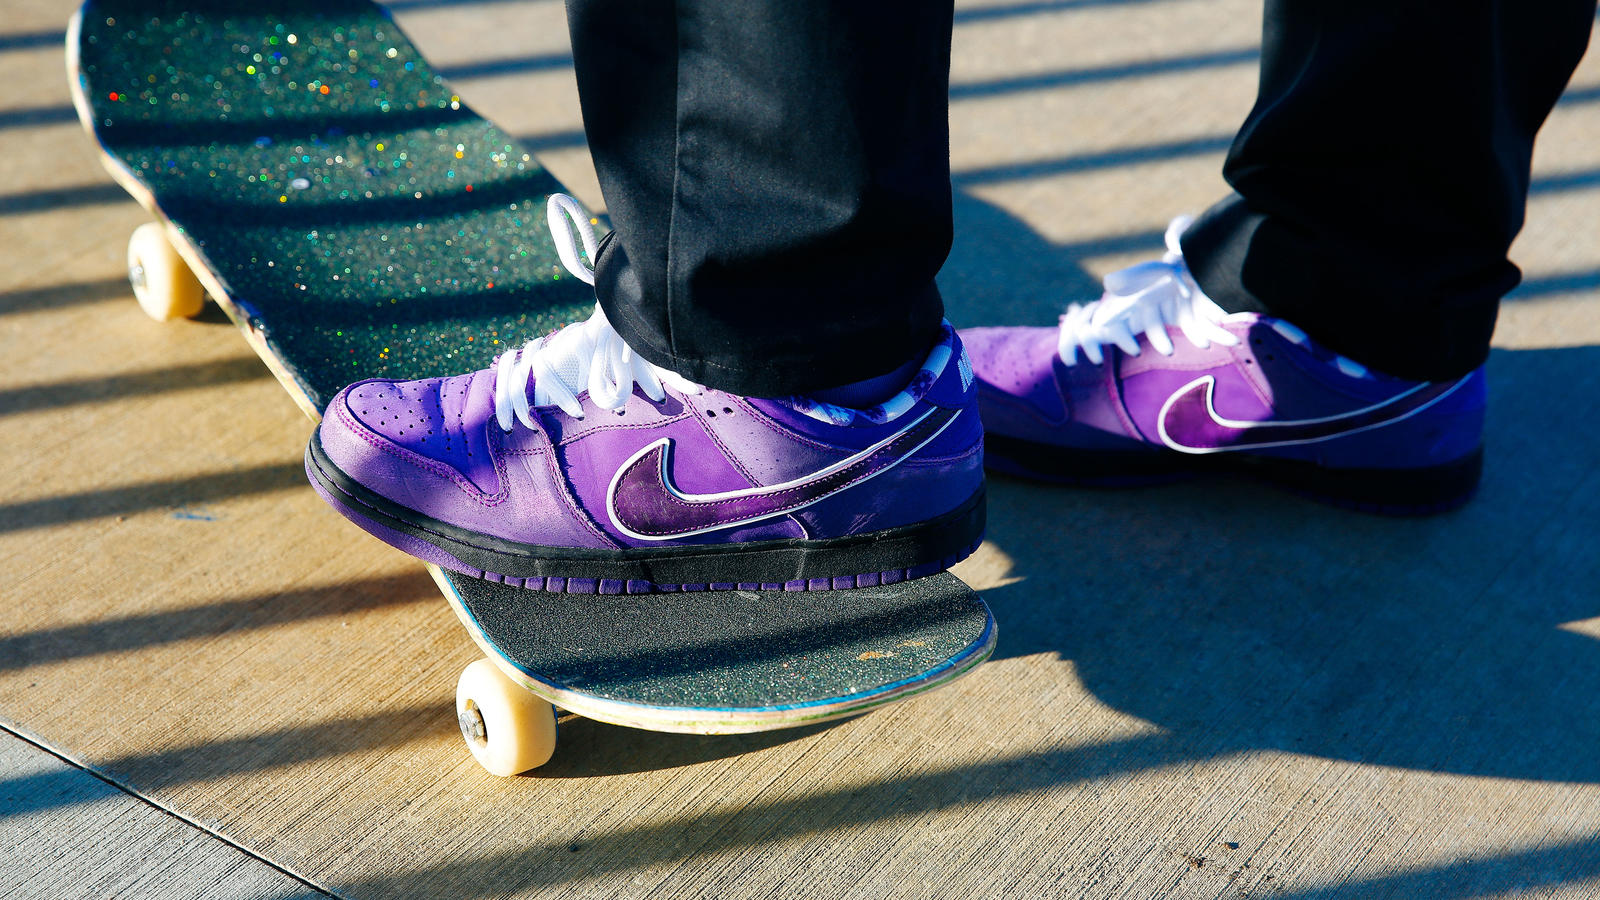 Concepts x Nike SB Dunk Purple Lobster  0